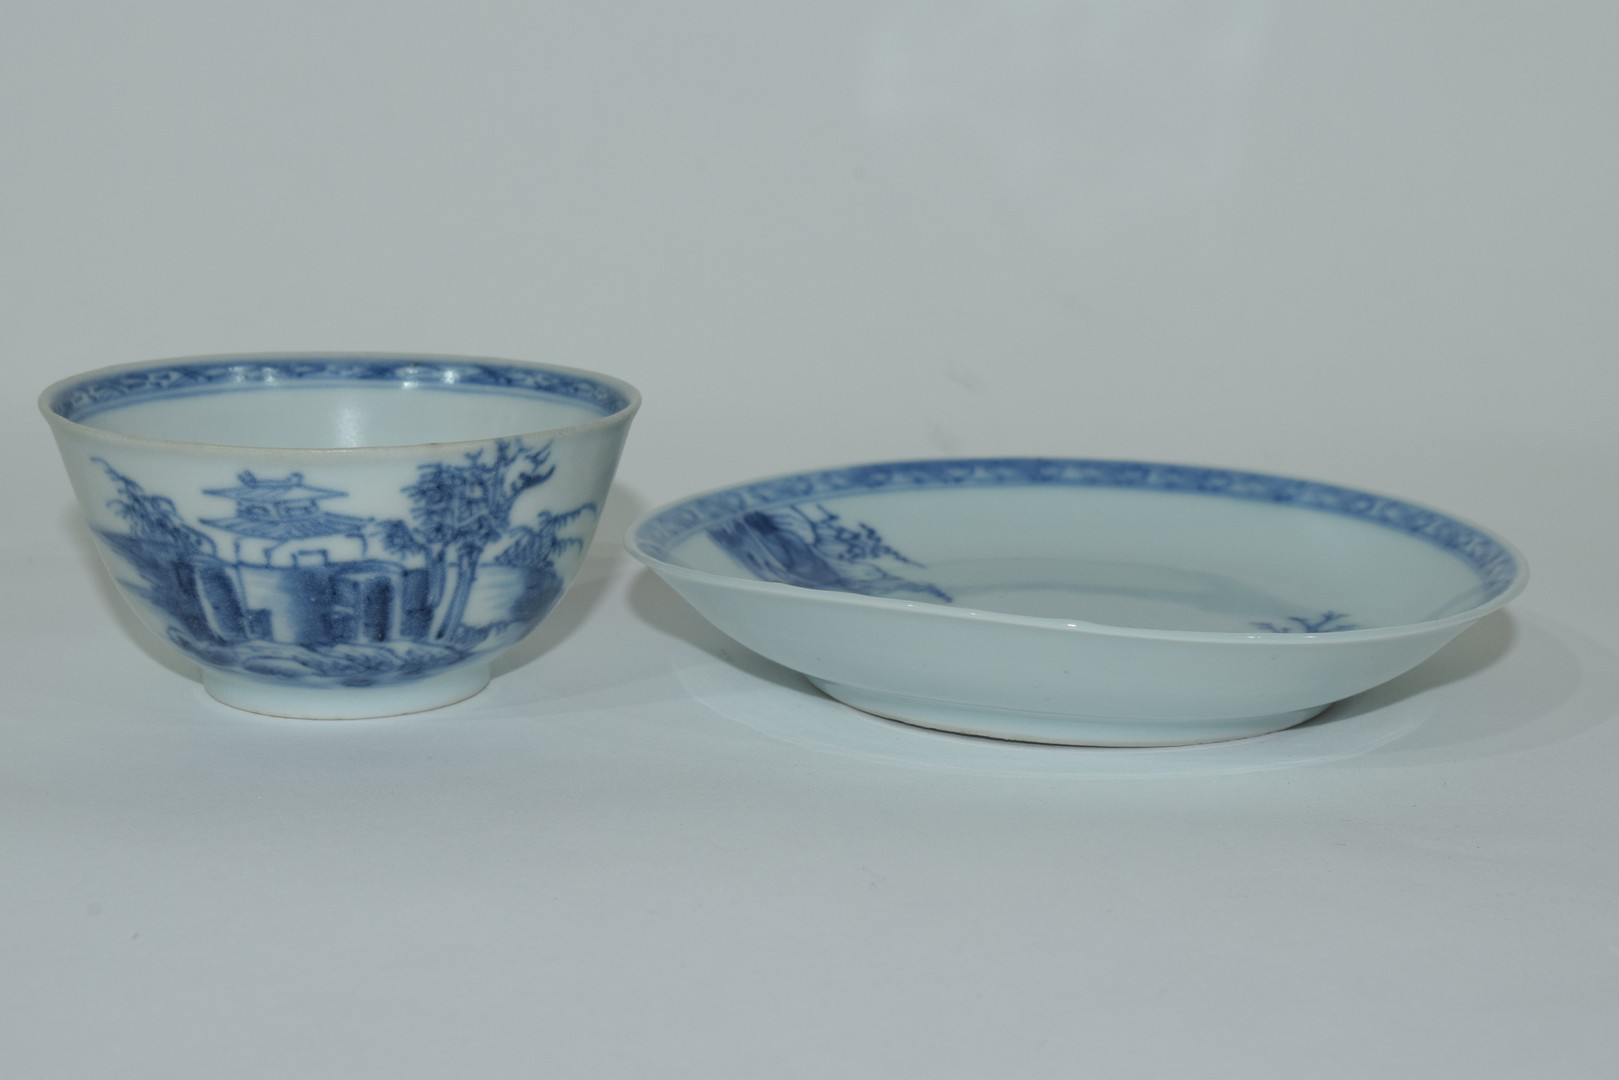 18th century Chinese porcelain Nanking Cargo tea bowl and saucer - Image 3 of 15